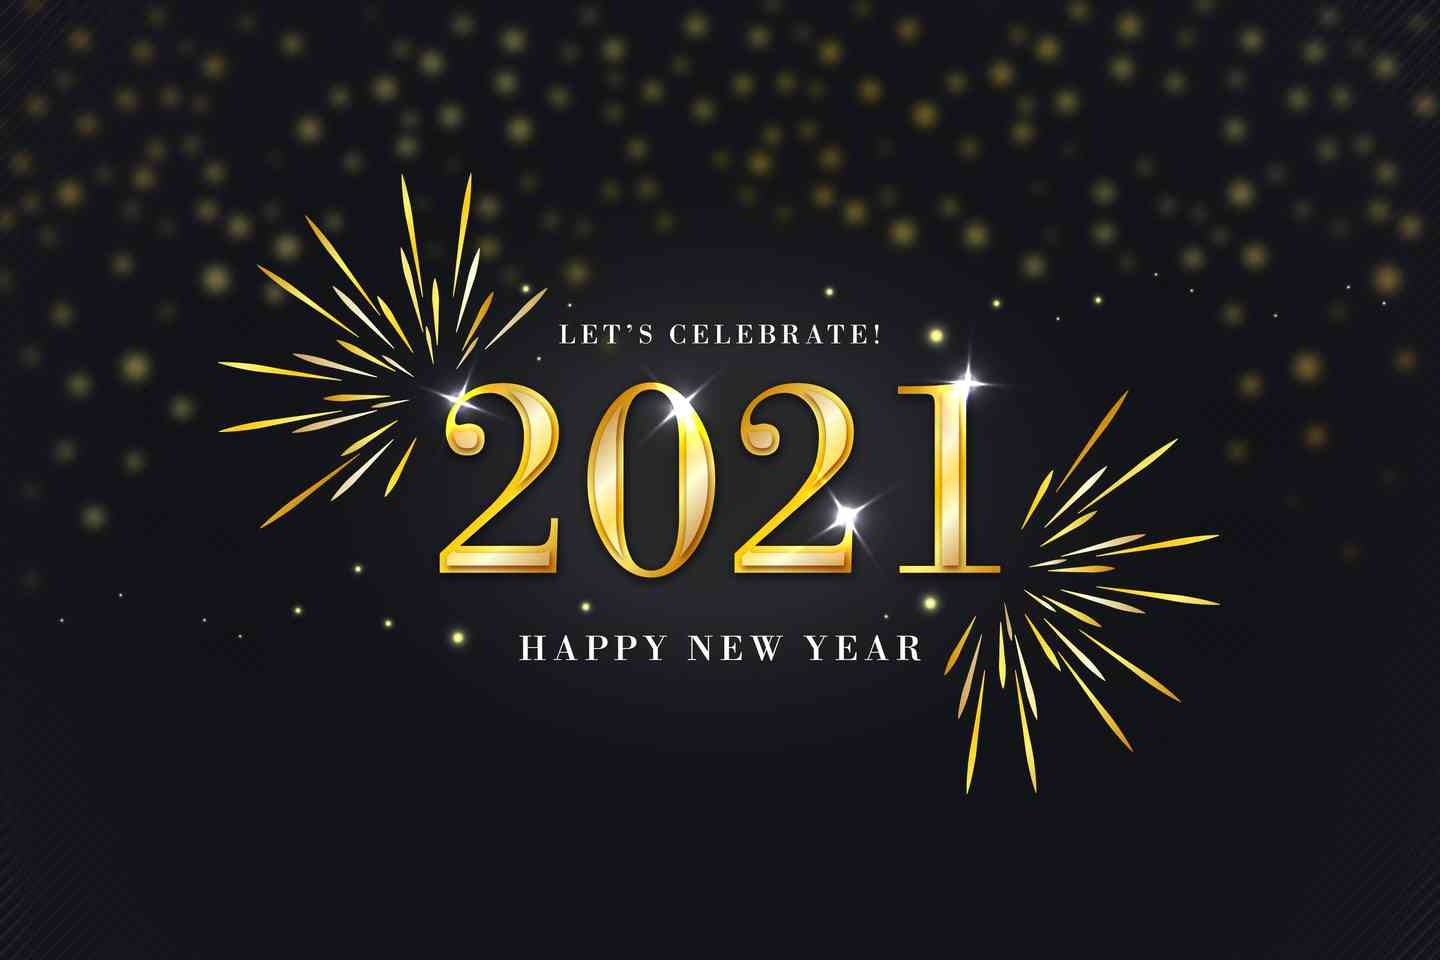 let's celebrate 2021 - happy new year